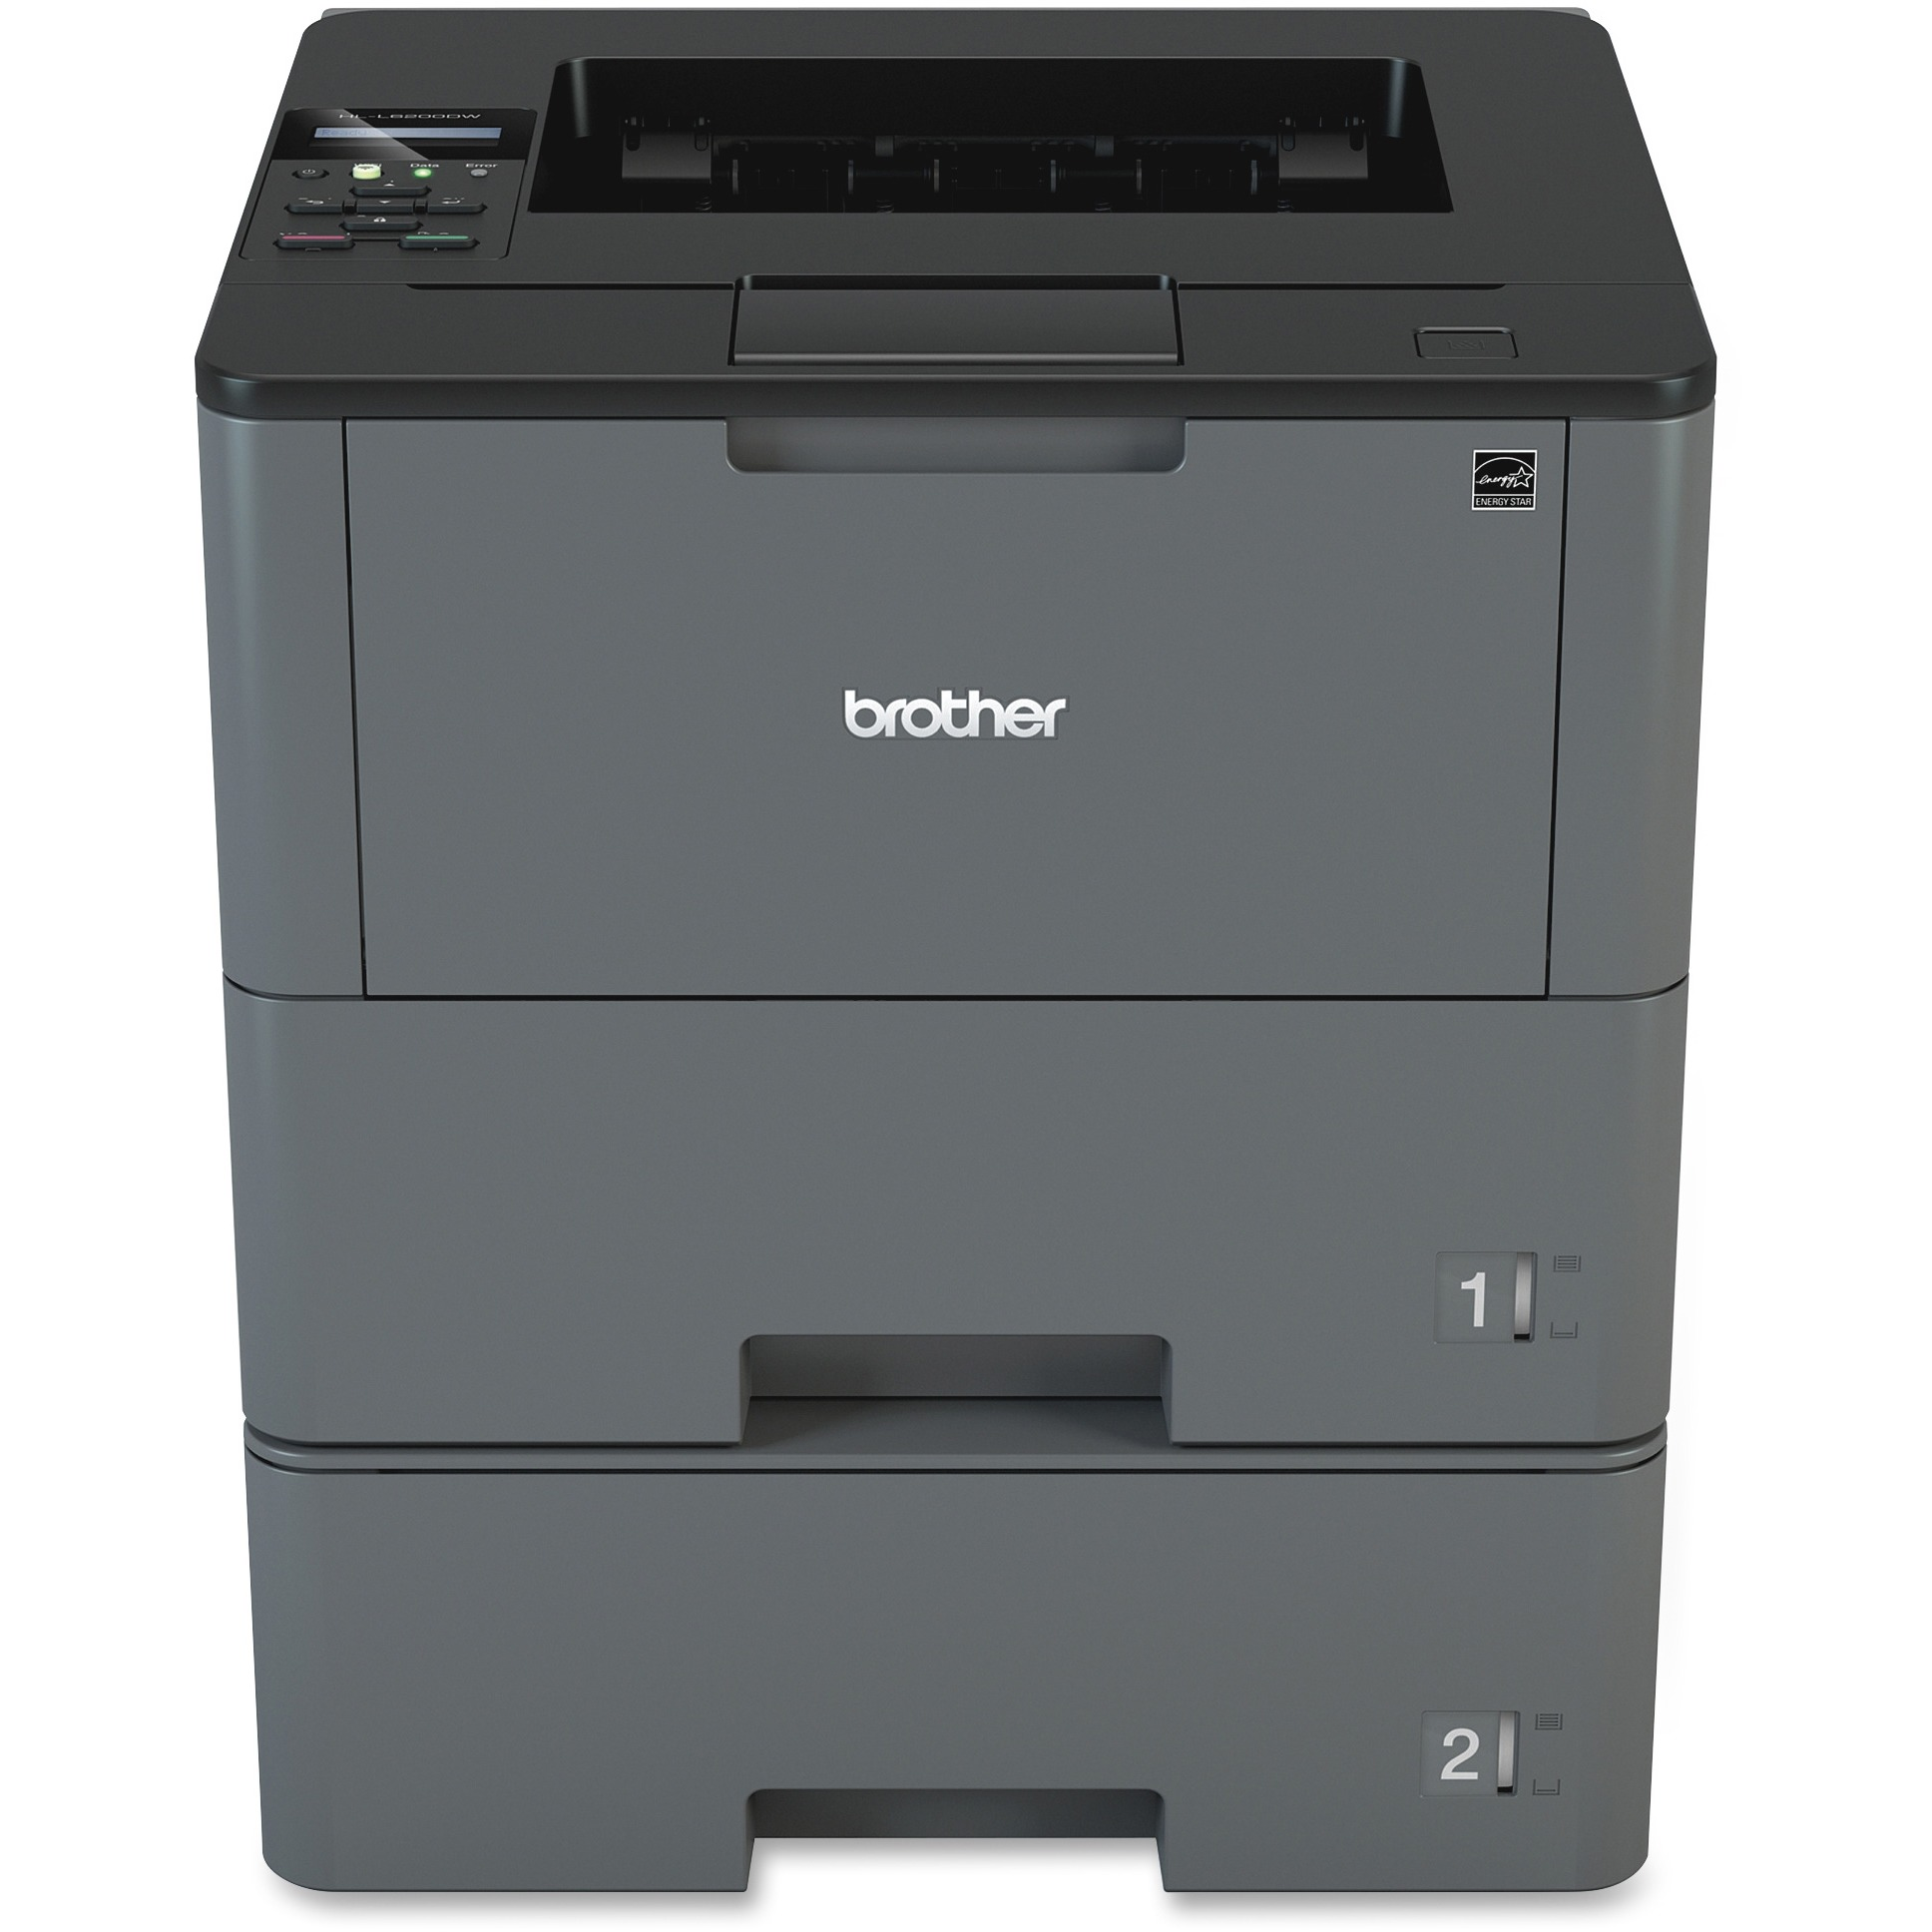 Brother Monochrome Laser Printer, HL-L6200DWT, Duplex Printing, Mobile Printing, Dual Paper Trays, Wireless Networking